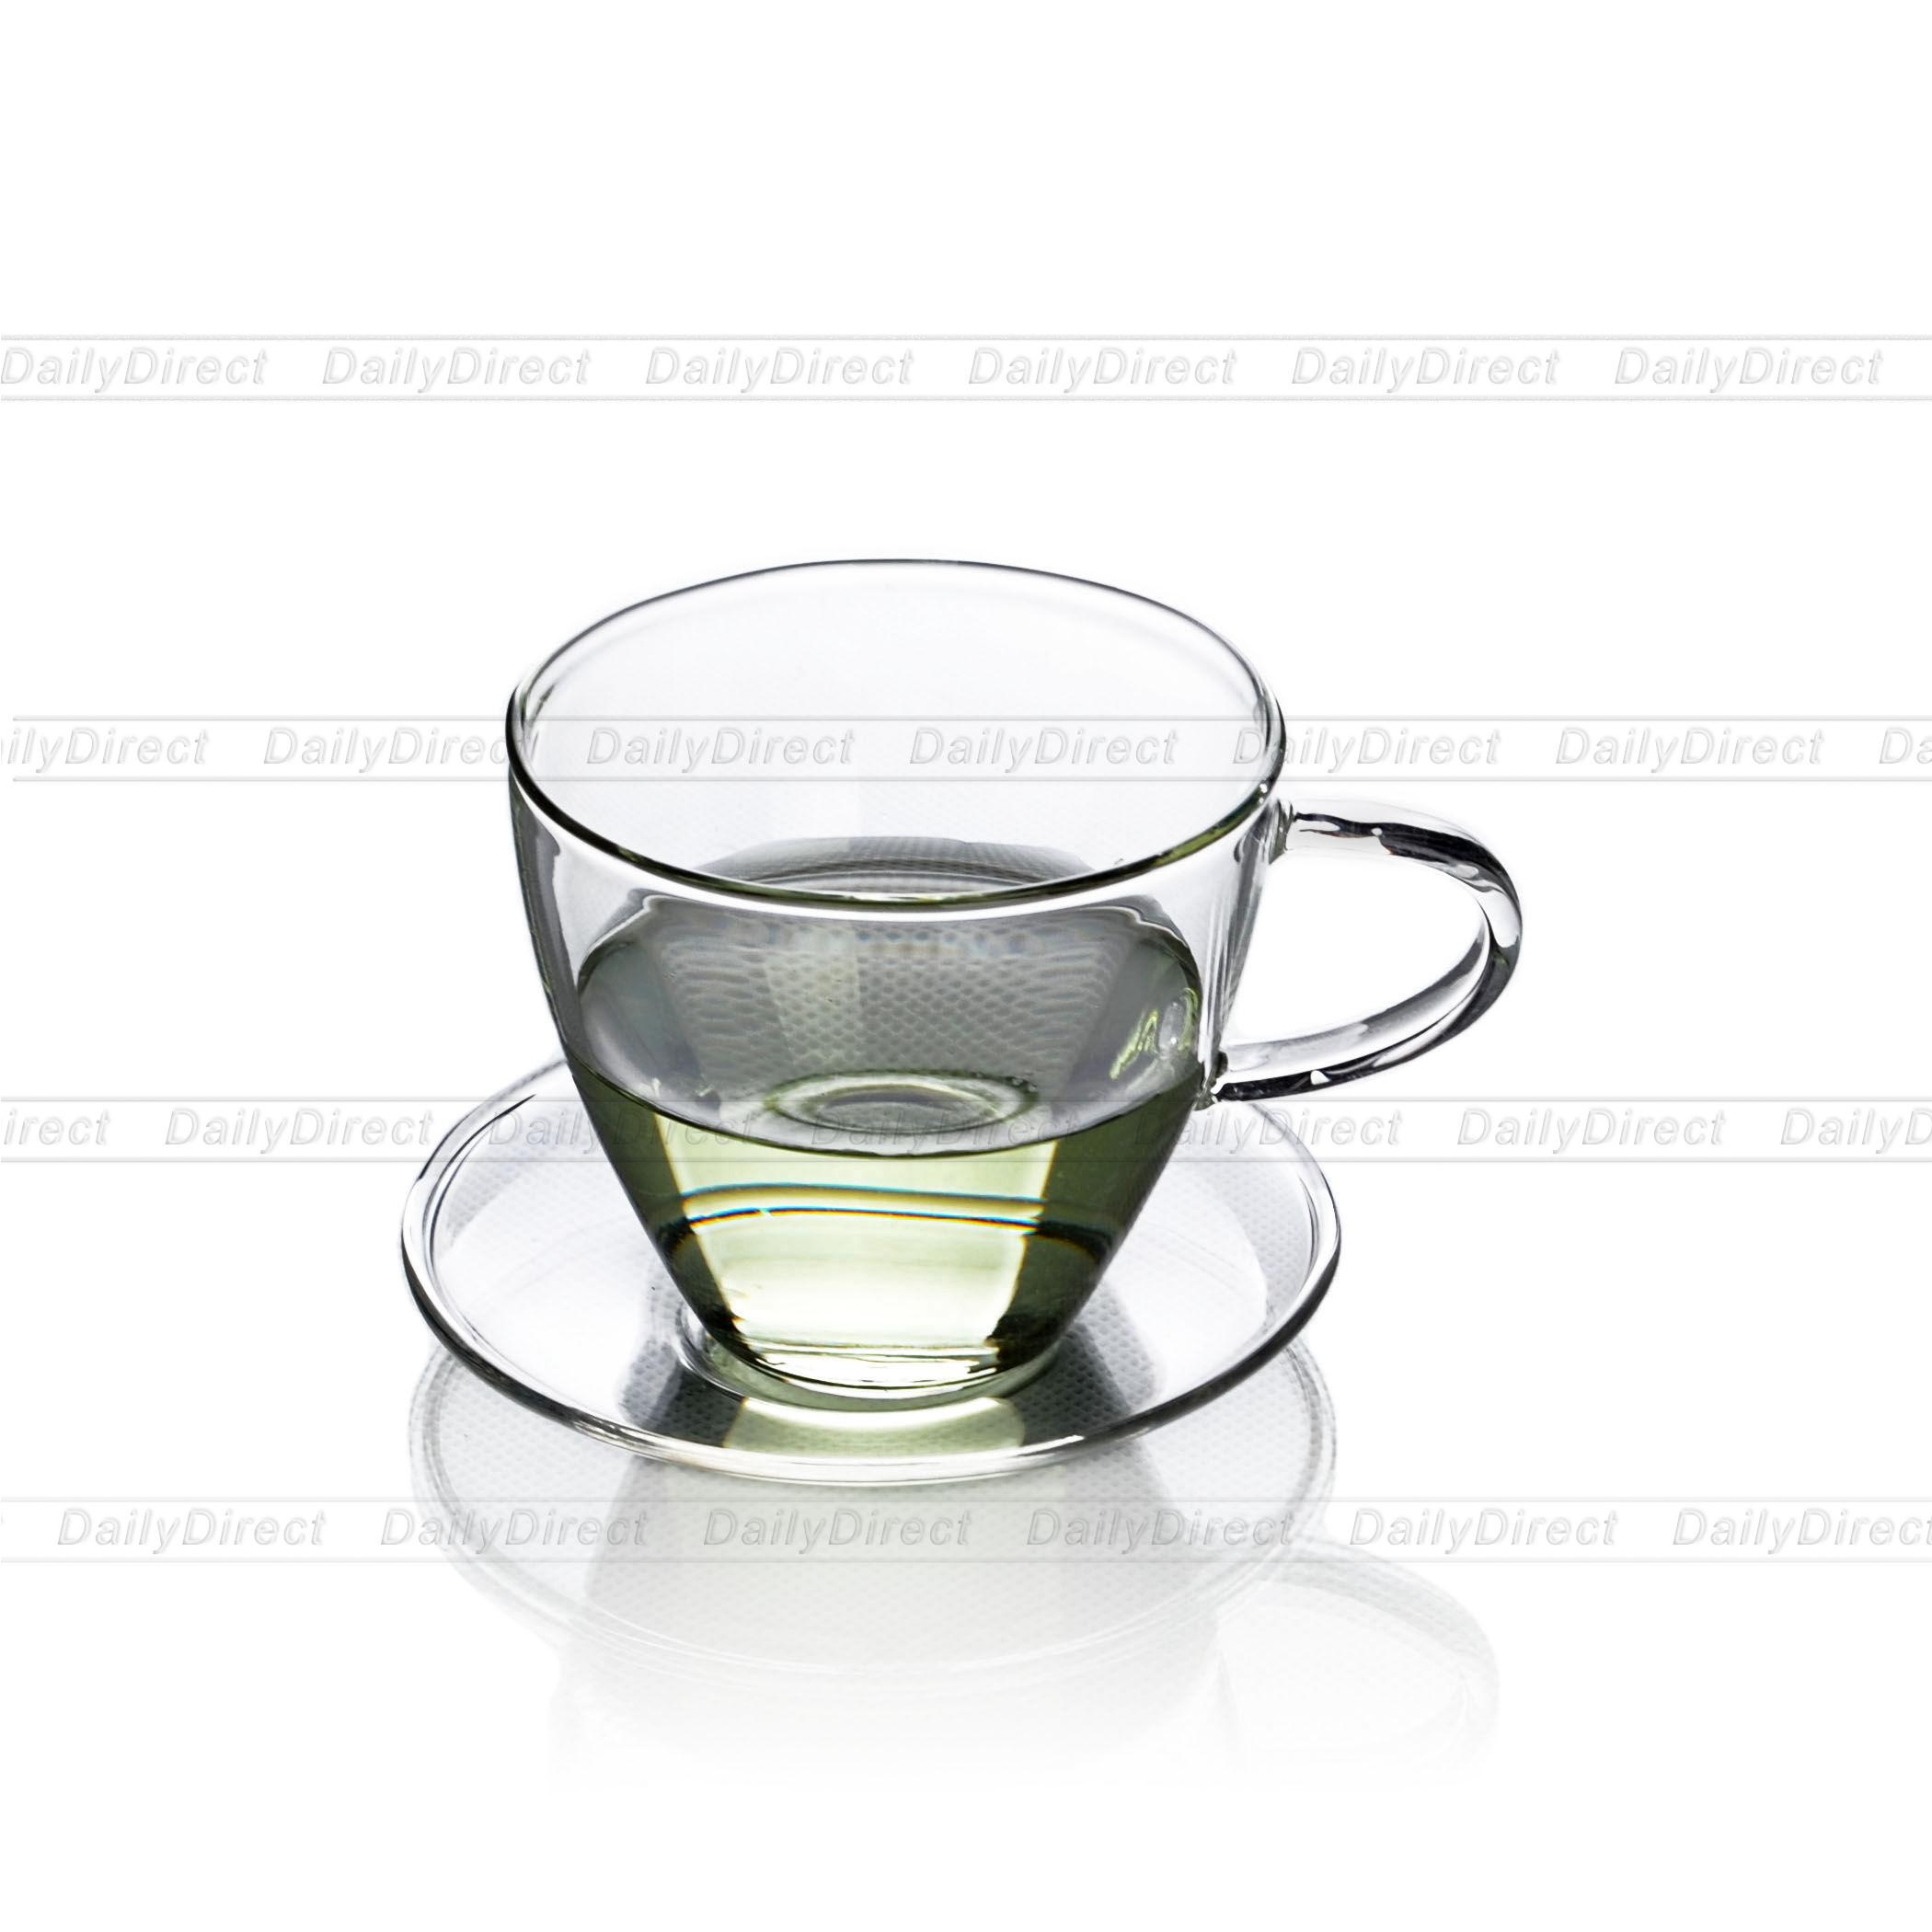 popular modern cup and saucerbuy cheap modern cup and saucer lots  - lots tea coffee cup set  heat resistant glass tea cup ml fl